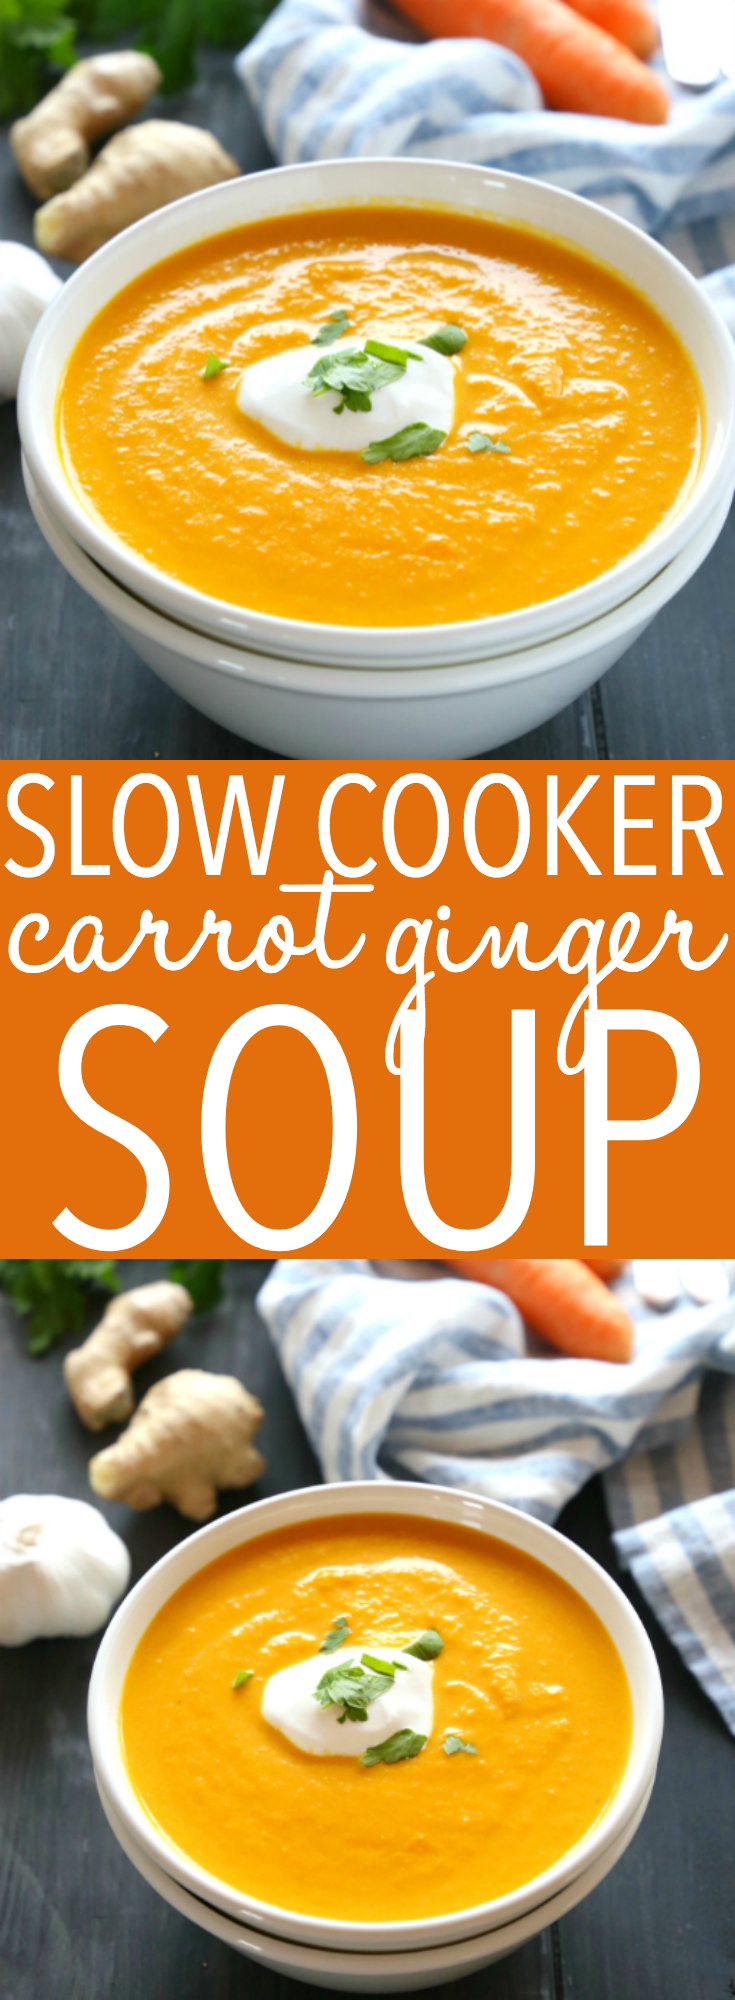 This Slow Cooker Creamy Carrot Ginger Soup is the easiest carrot soup that's warm, hearty, and packed with spicy ginger and creamy coconut. It's healthy, made with only a few simple ingredients, and it's so easy to make in the Crock Pot or slow cooker!! Recipe from thebusybaker.ca! #slowcookersoup #dairyfreesoup via @busybakerblog